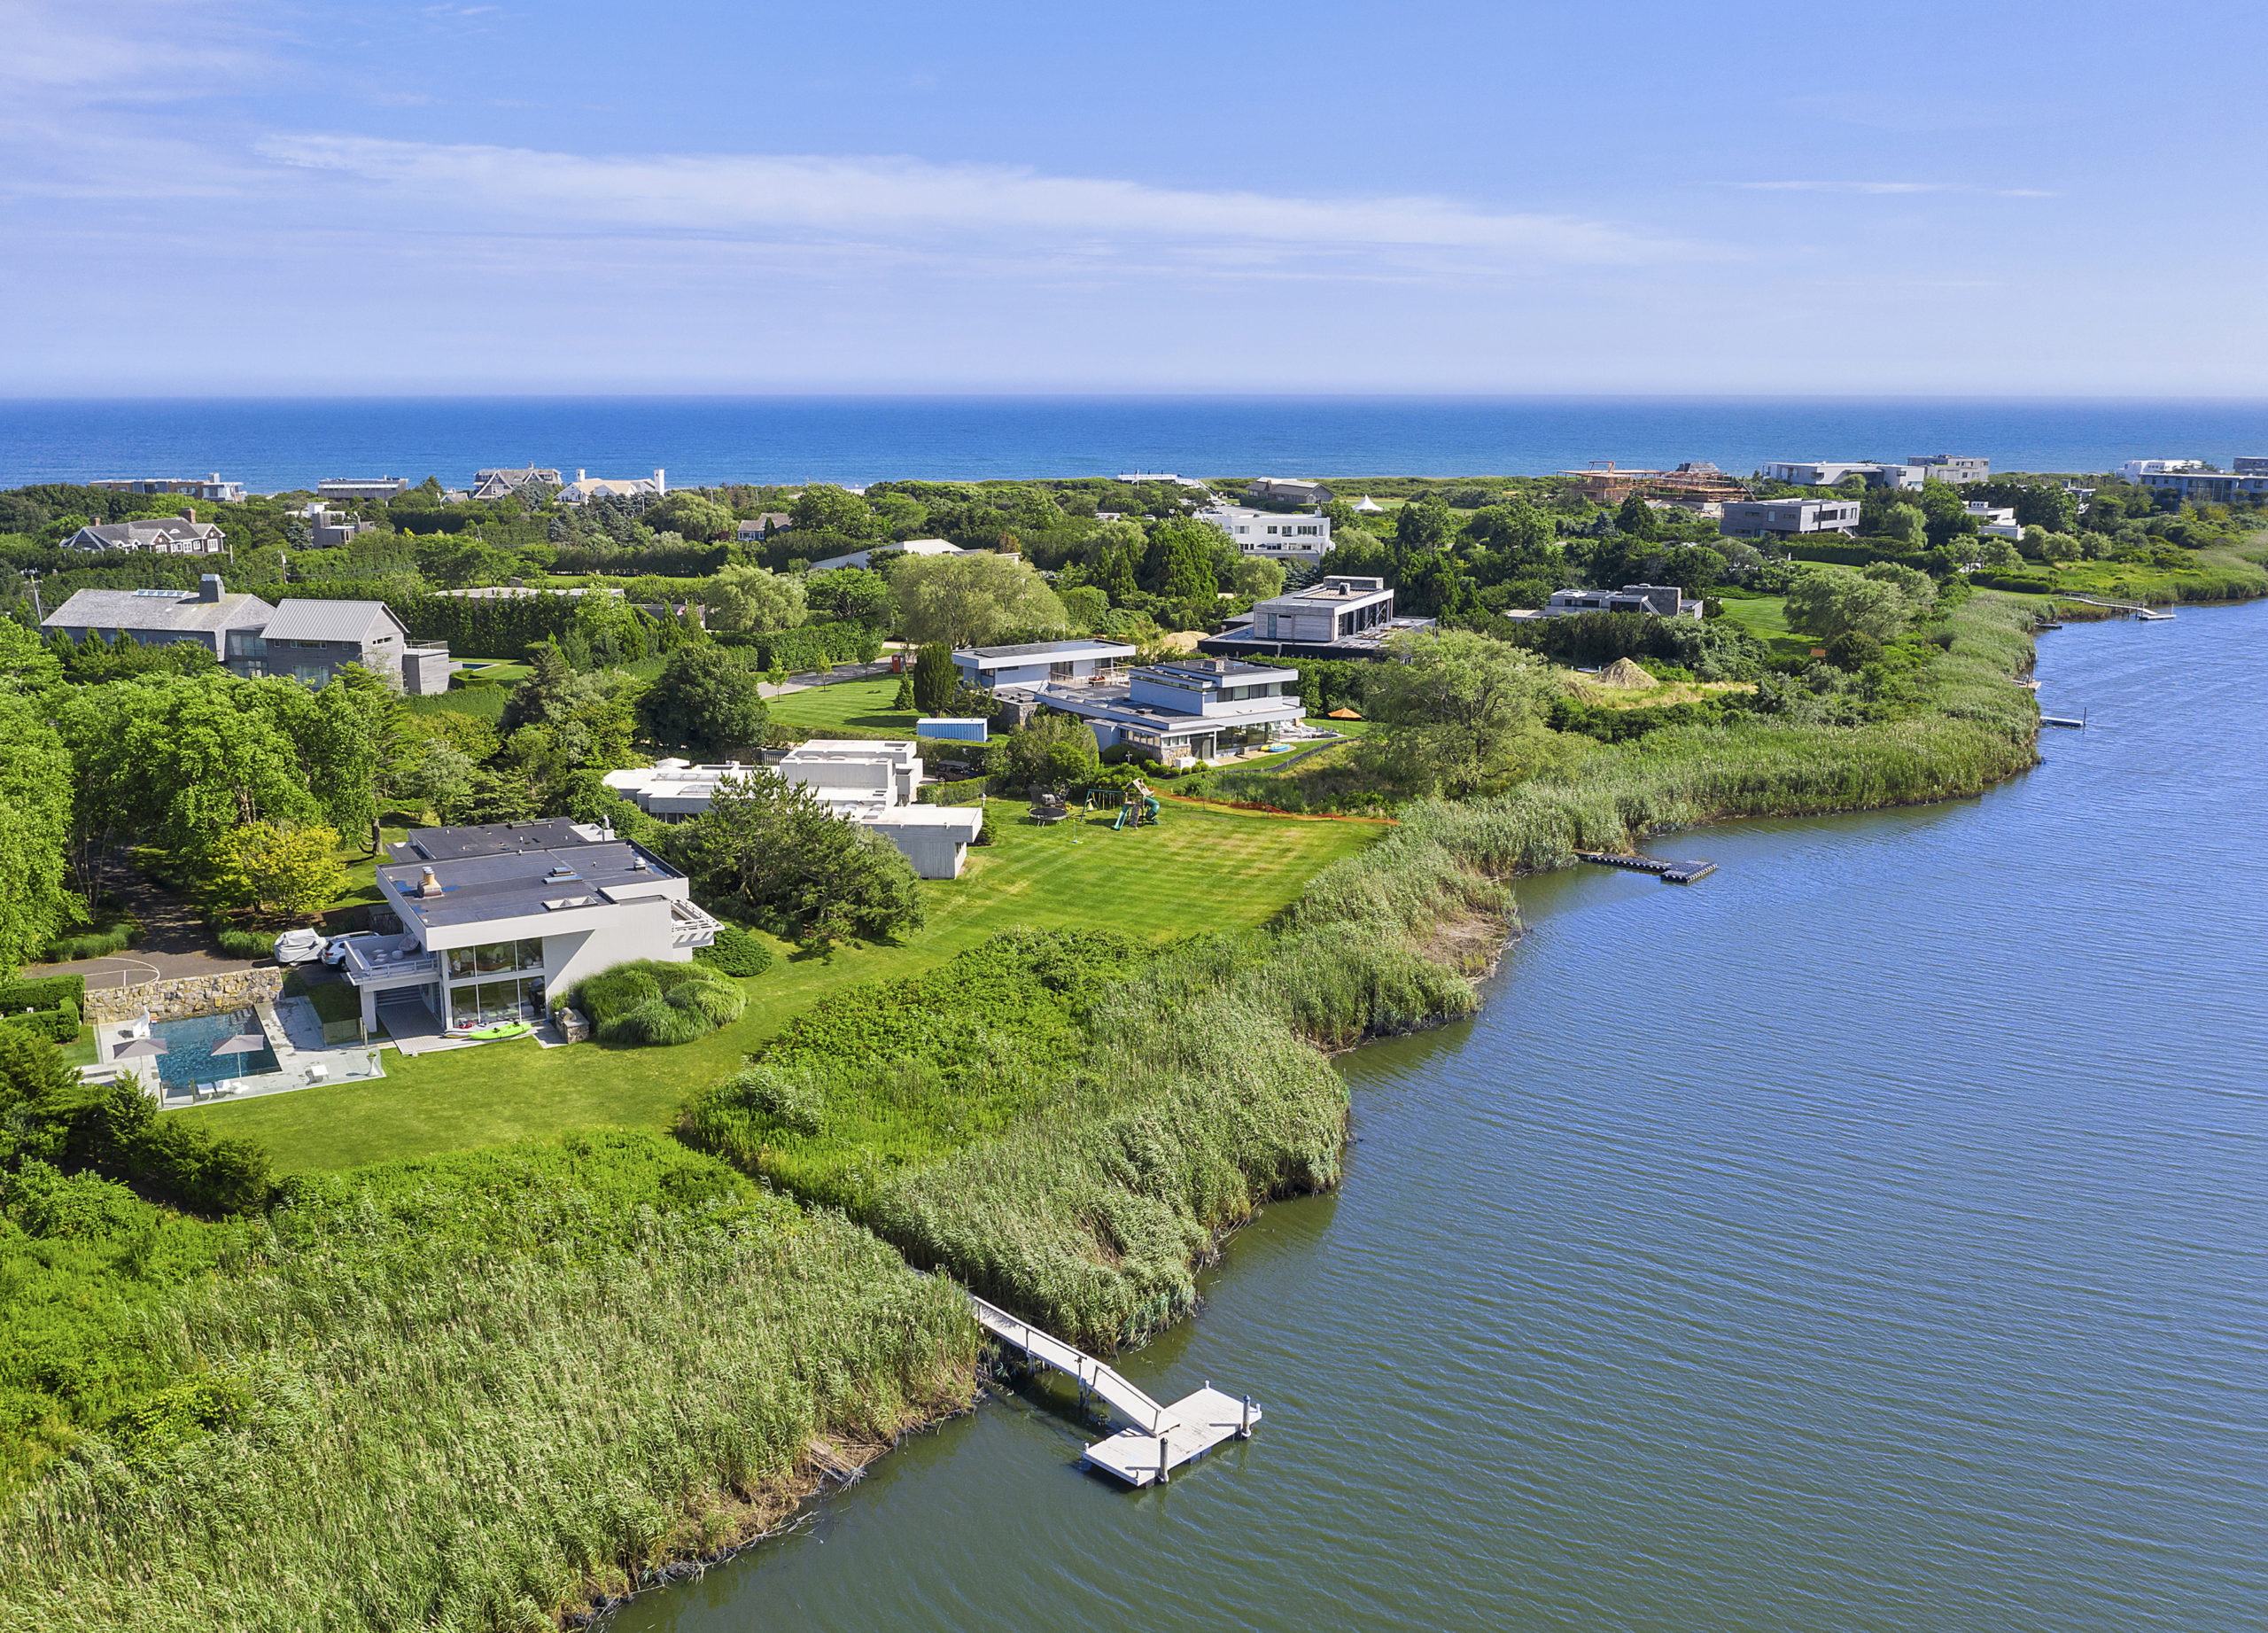 75 Sams Creek Road, Bridgehampton